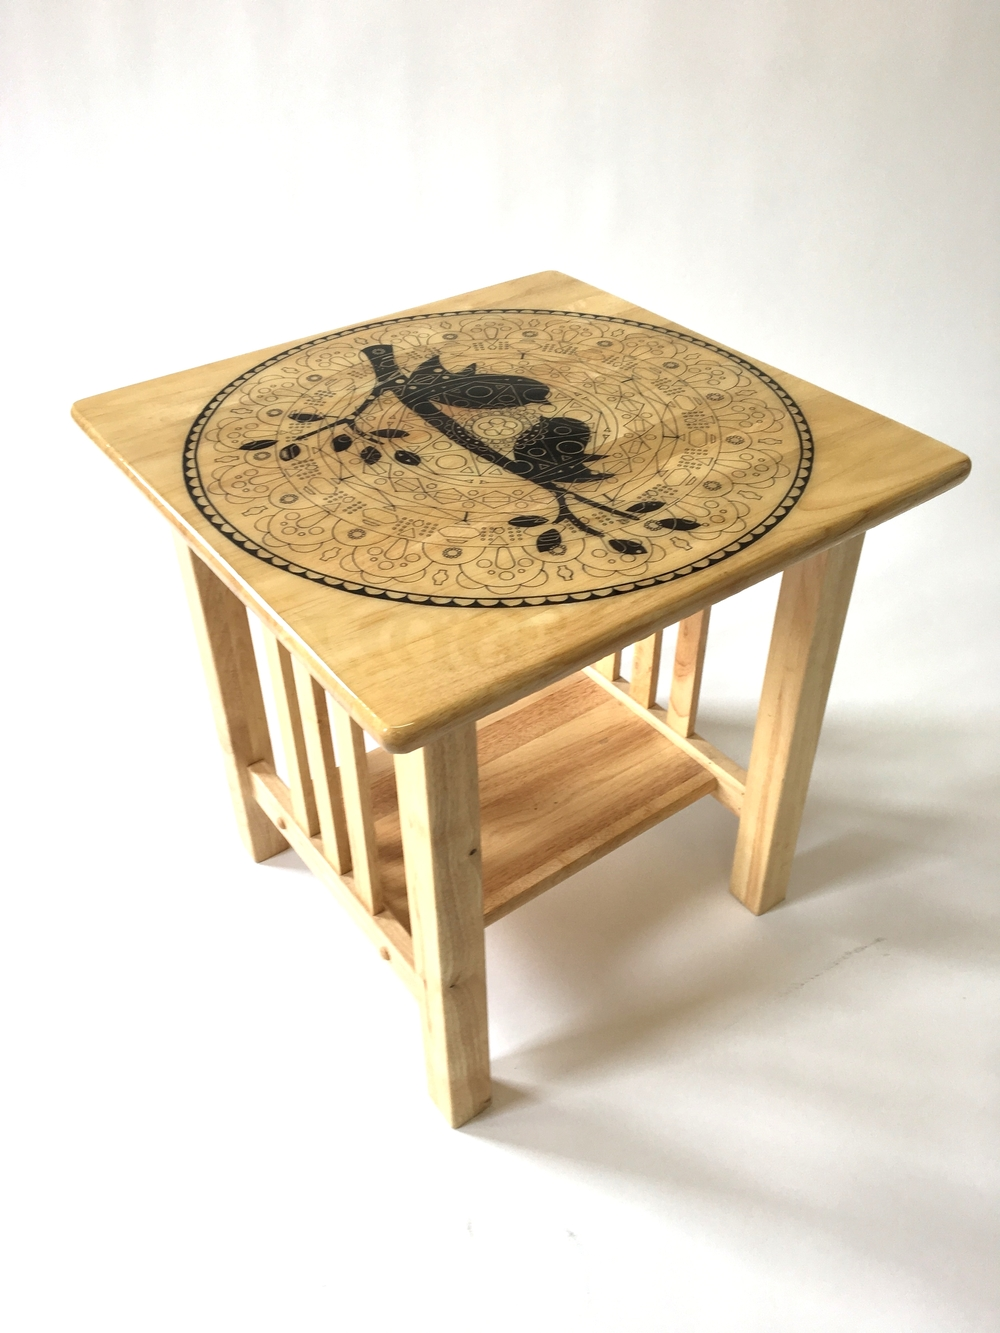 Bird Silhouette End Table $350